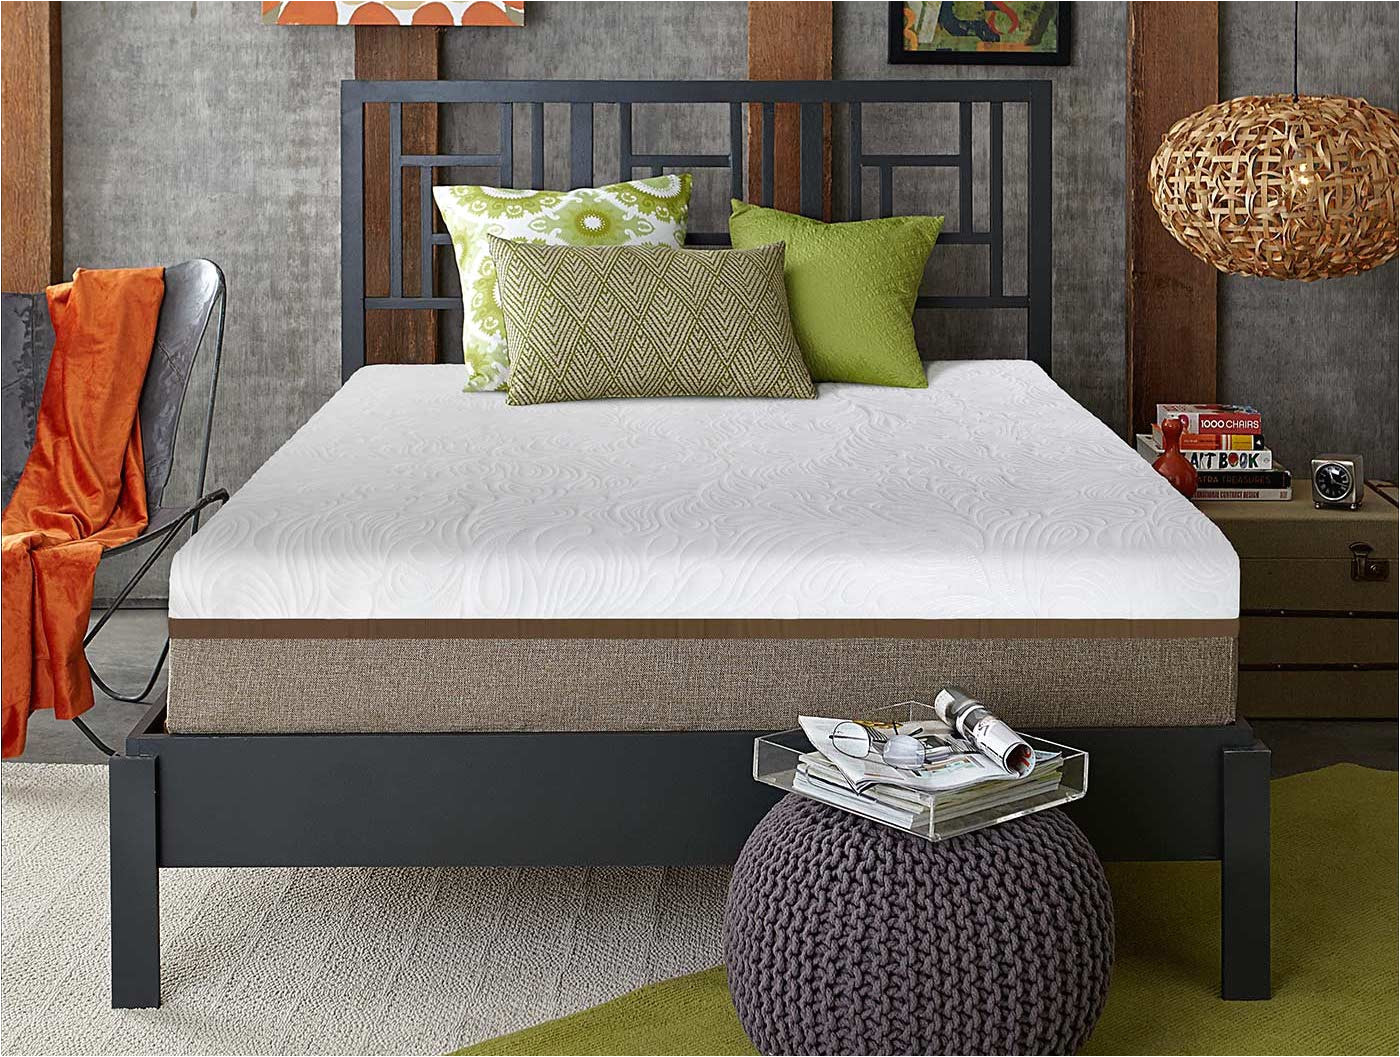 buy a live and sleep mattress shop and use coupon code genefood for 100 off any mattress purchase